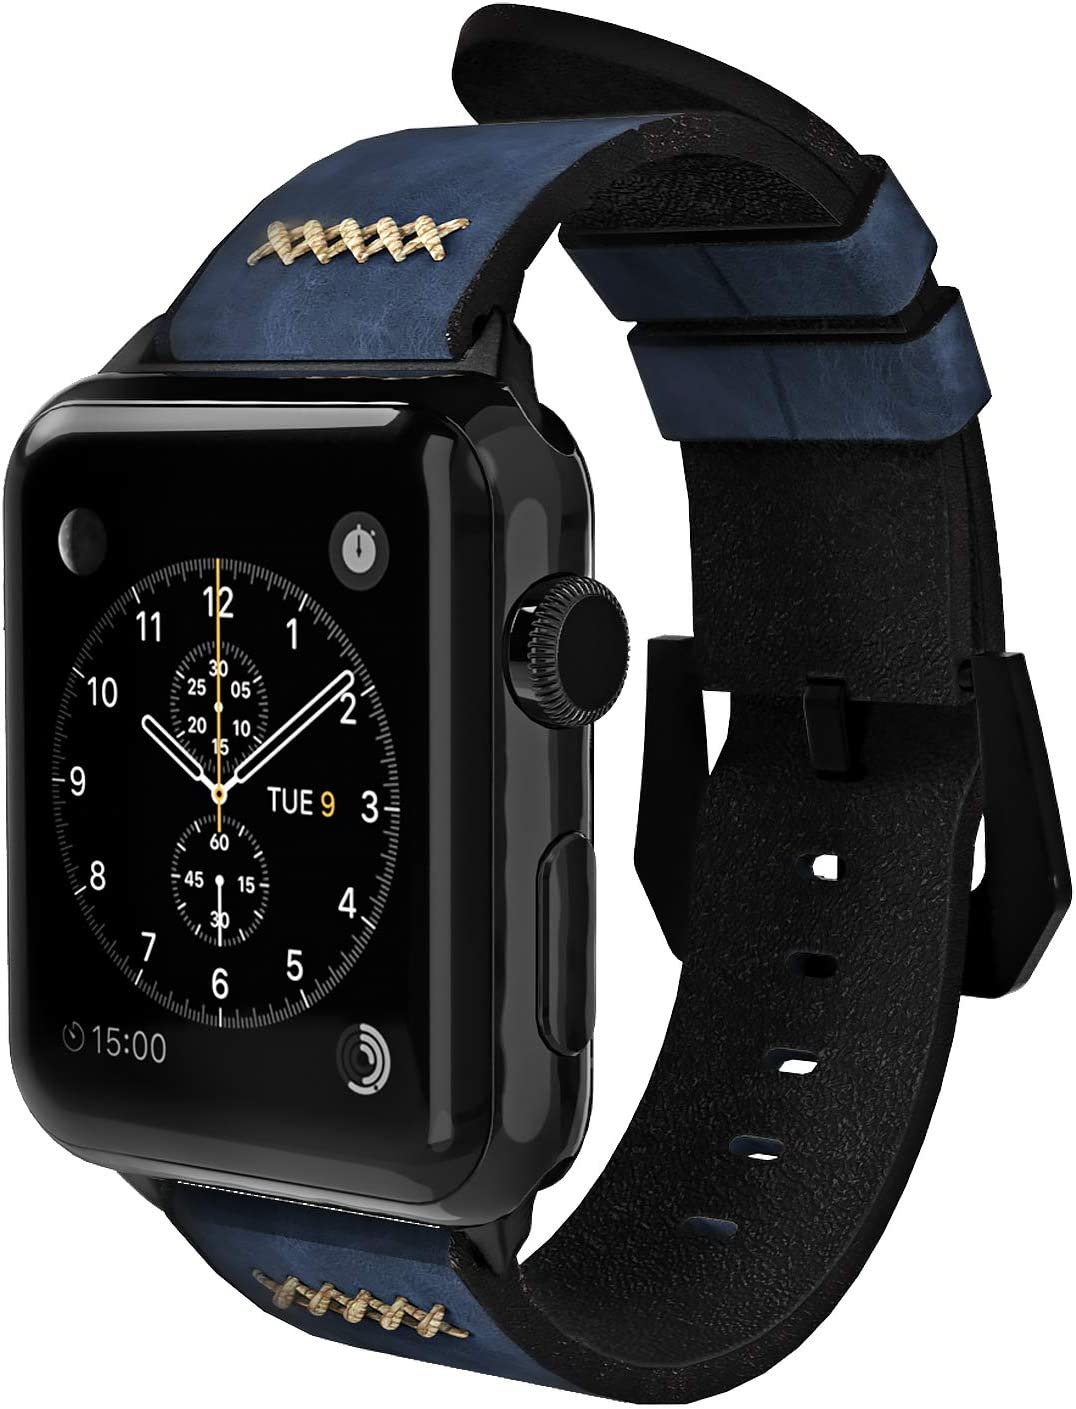 Gaze Leather Band Compatible with Apple Watch Band 38mm 40mm 44mm, Authentic Leather Replacement Strap Compatible with Apple Watch Series 5/4/3/2/1 (Midnight Blue, 42mm / 44mm)